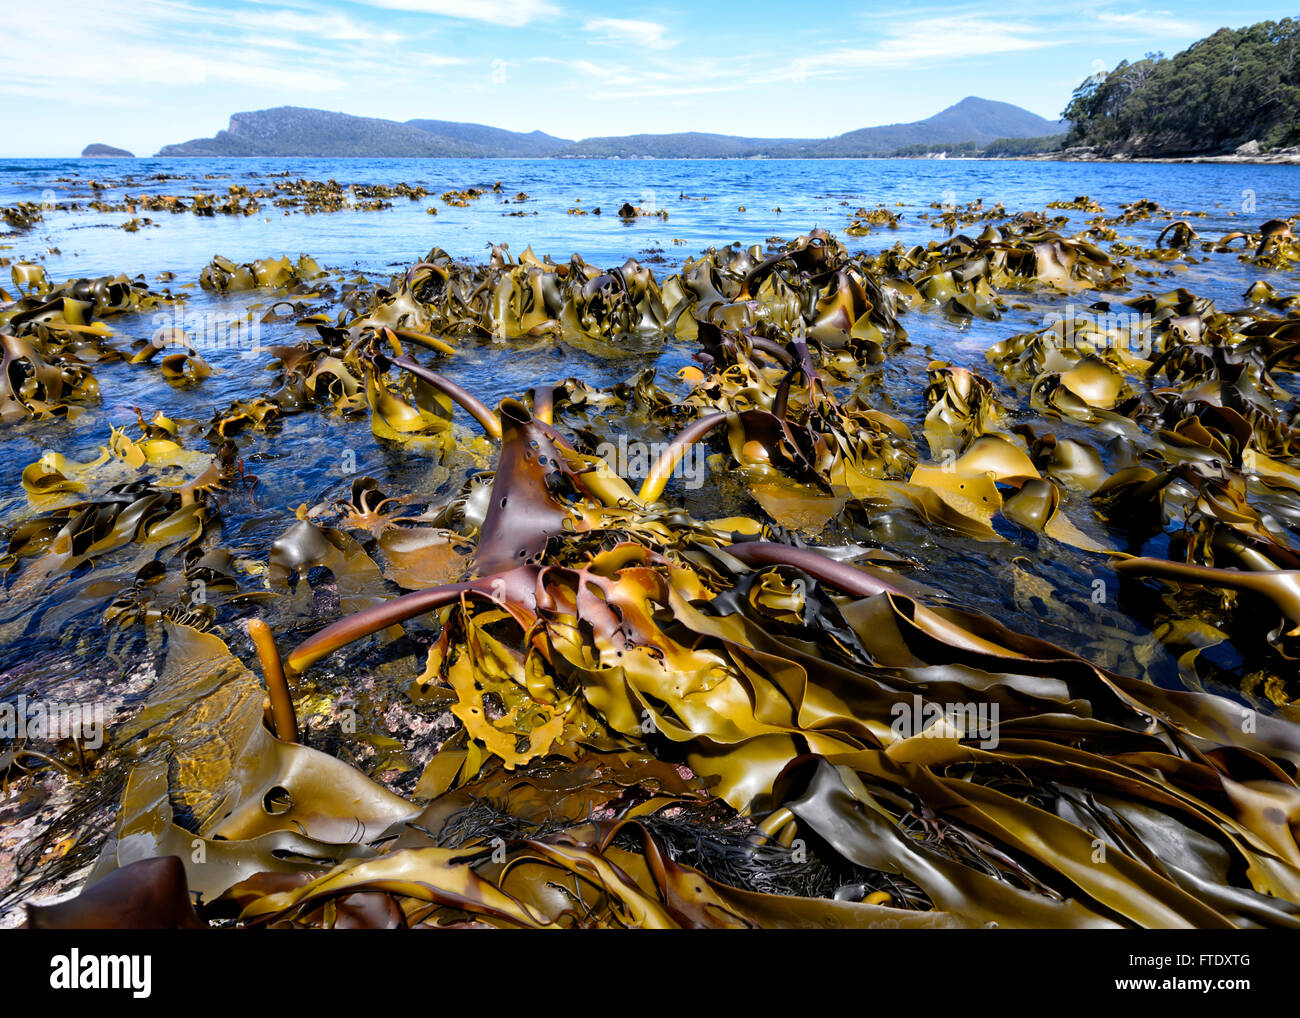 kelp-seaweeds-adventure-bay-bruny-island